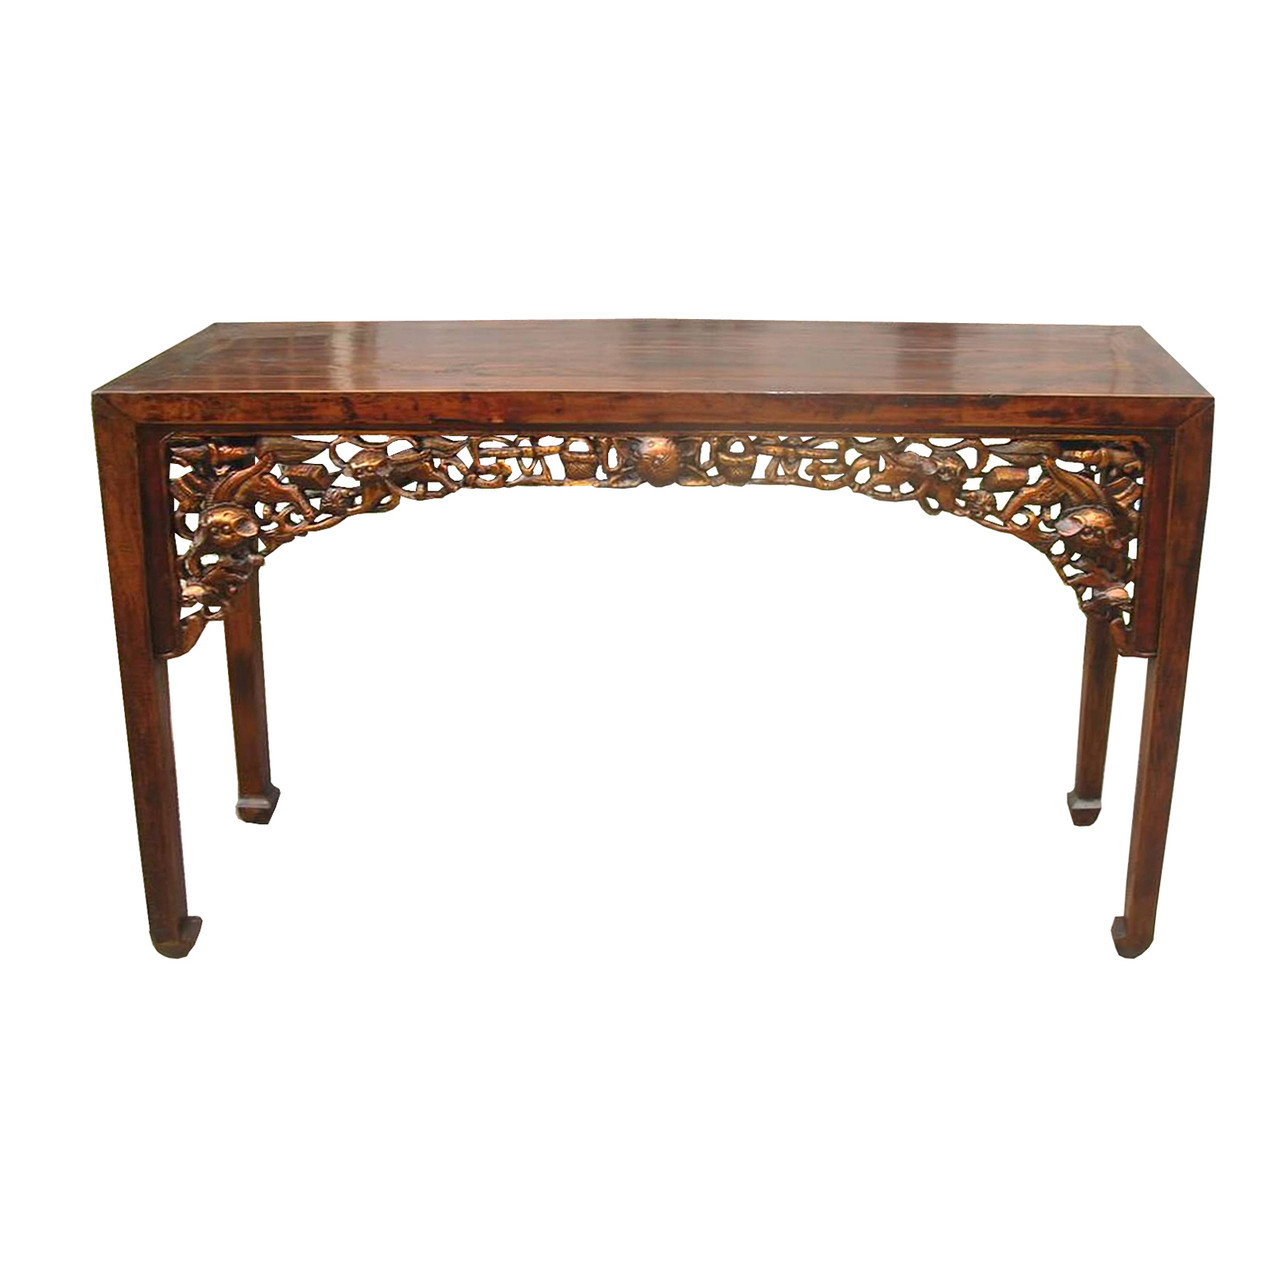 Delicieux Chinese Antique Table